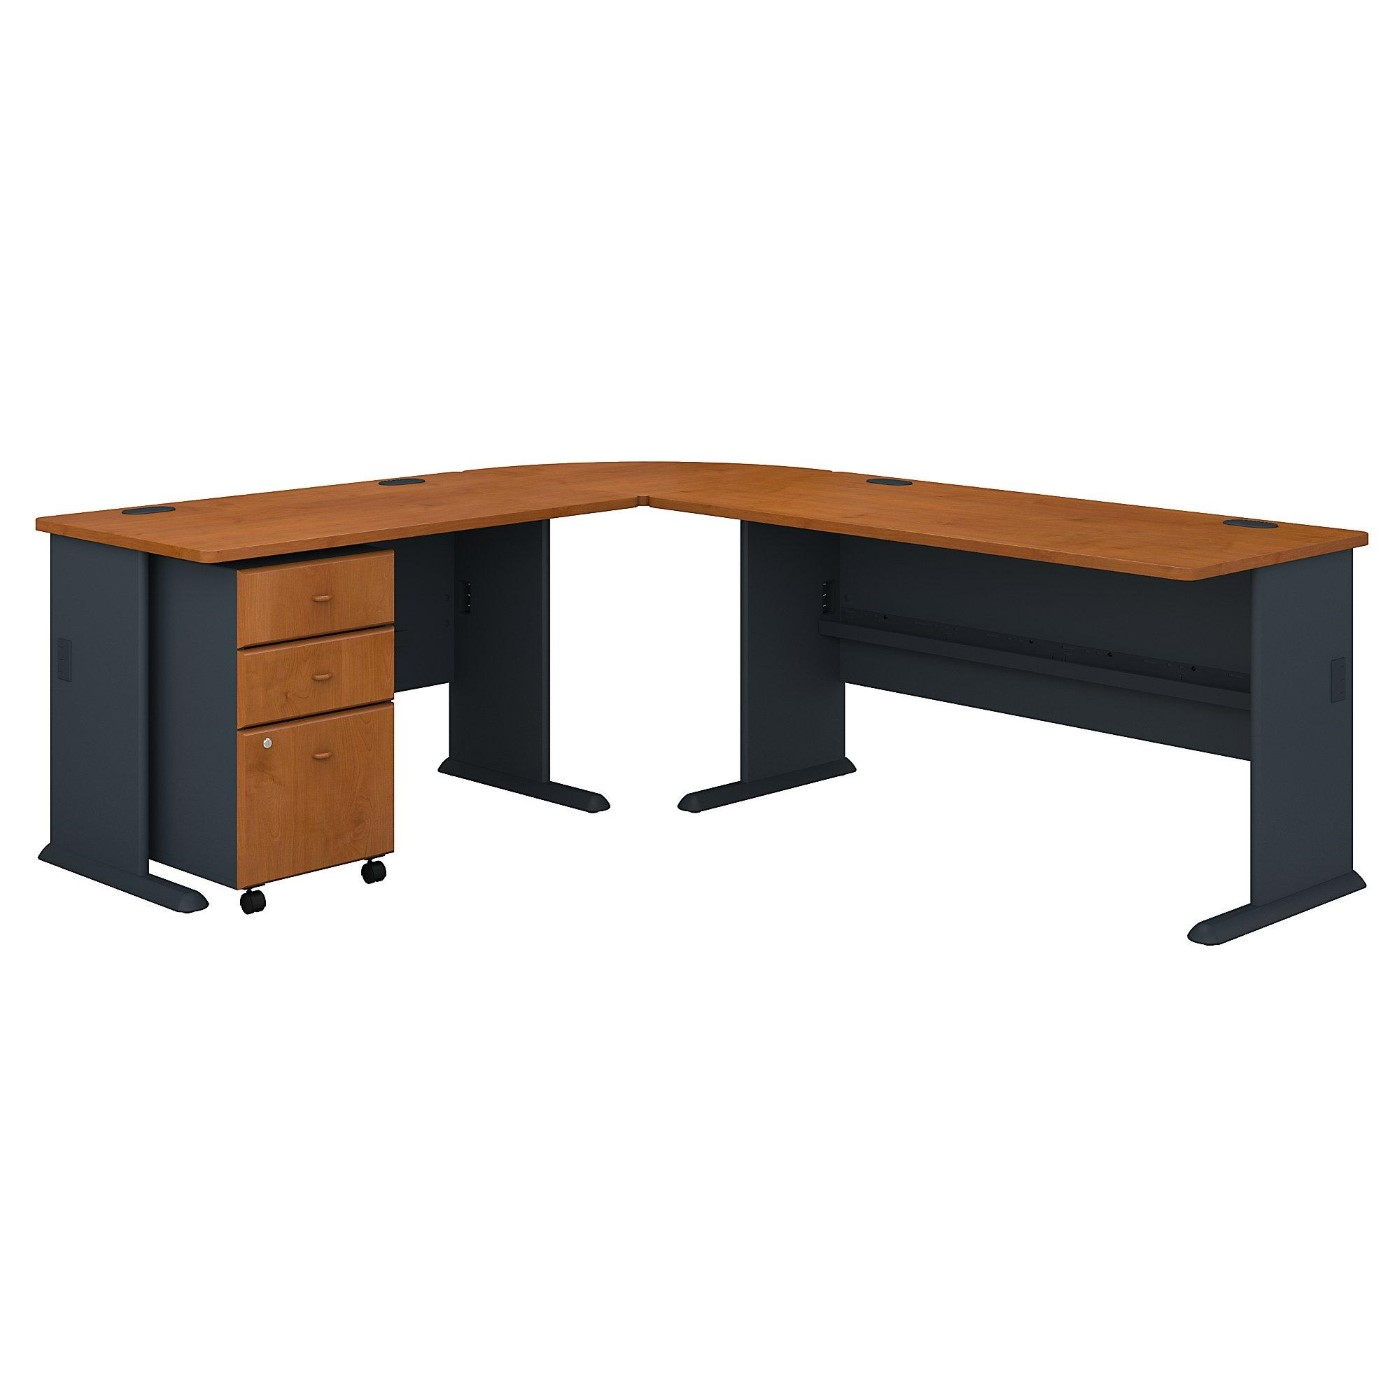 BUSH BUSINESS FURNITURE SERIES A 99W X 75D L SHAPED DESK WITH MOBILE FILE CABINET. FREE SHIPPING.  SALE DEDUCT 10% MORE ENTER '10percent' IN COUPON CODE BOX WHILE CHECKING OUT.